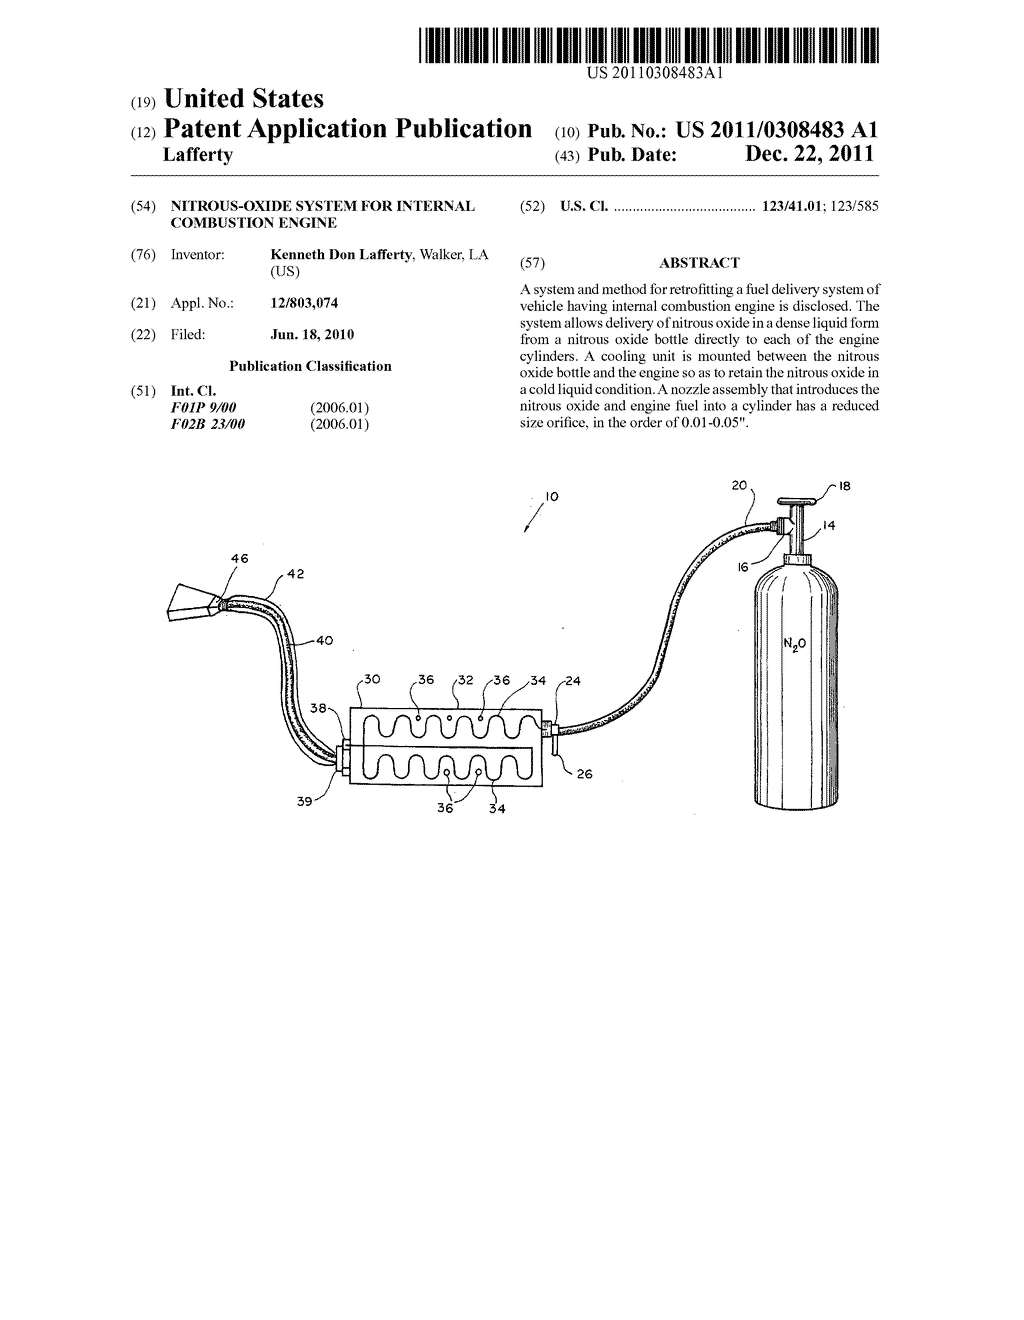 Nitrous Oxide System For Internal Combustion Engine Diagram Schematic And Image 01